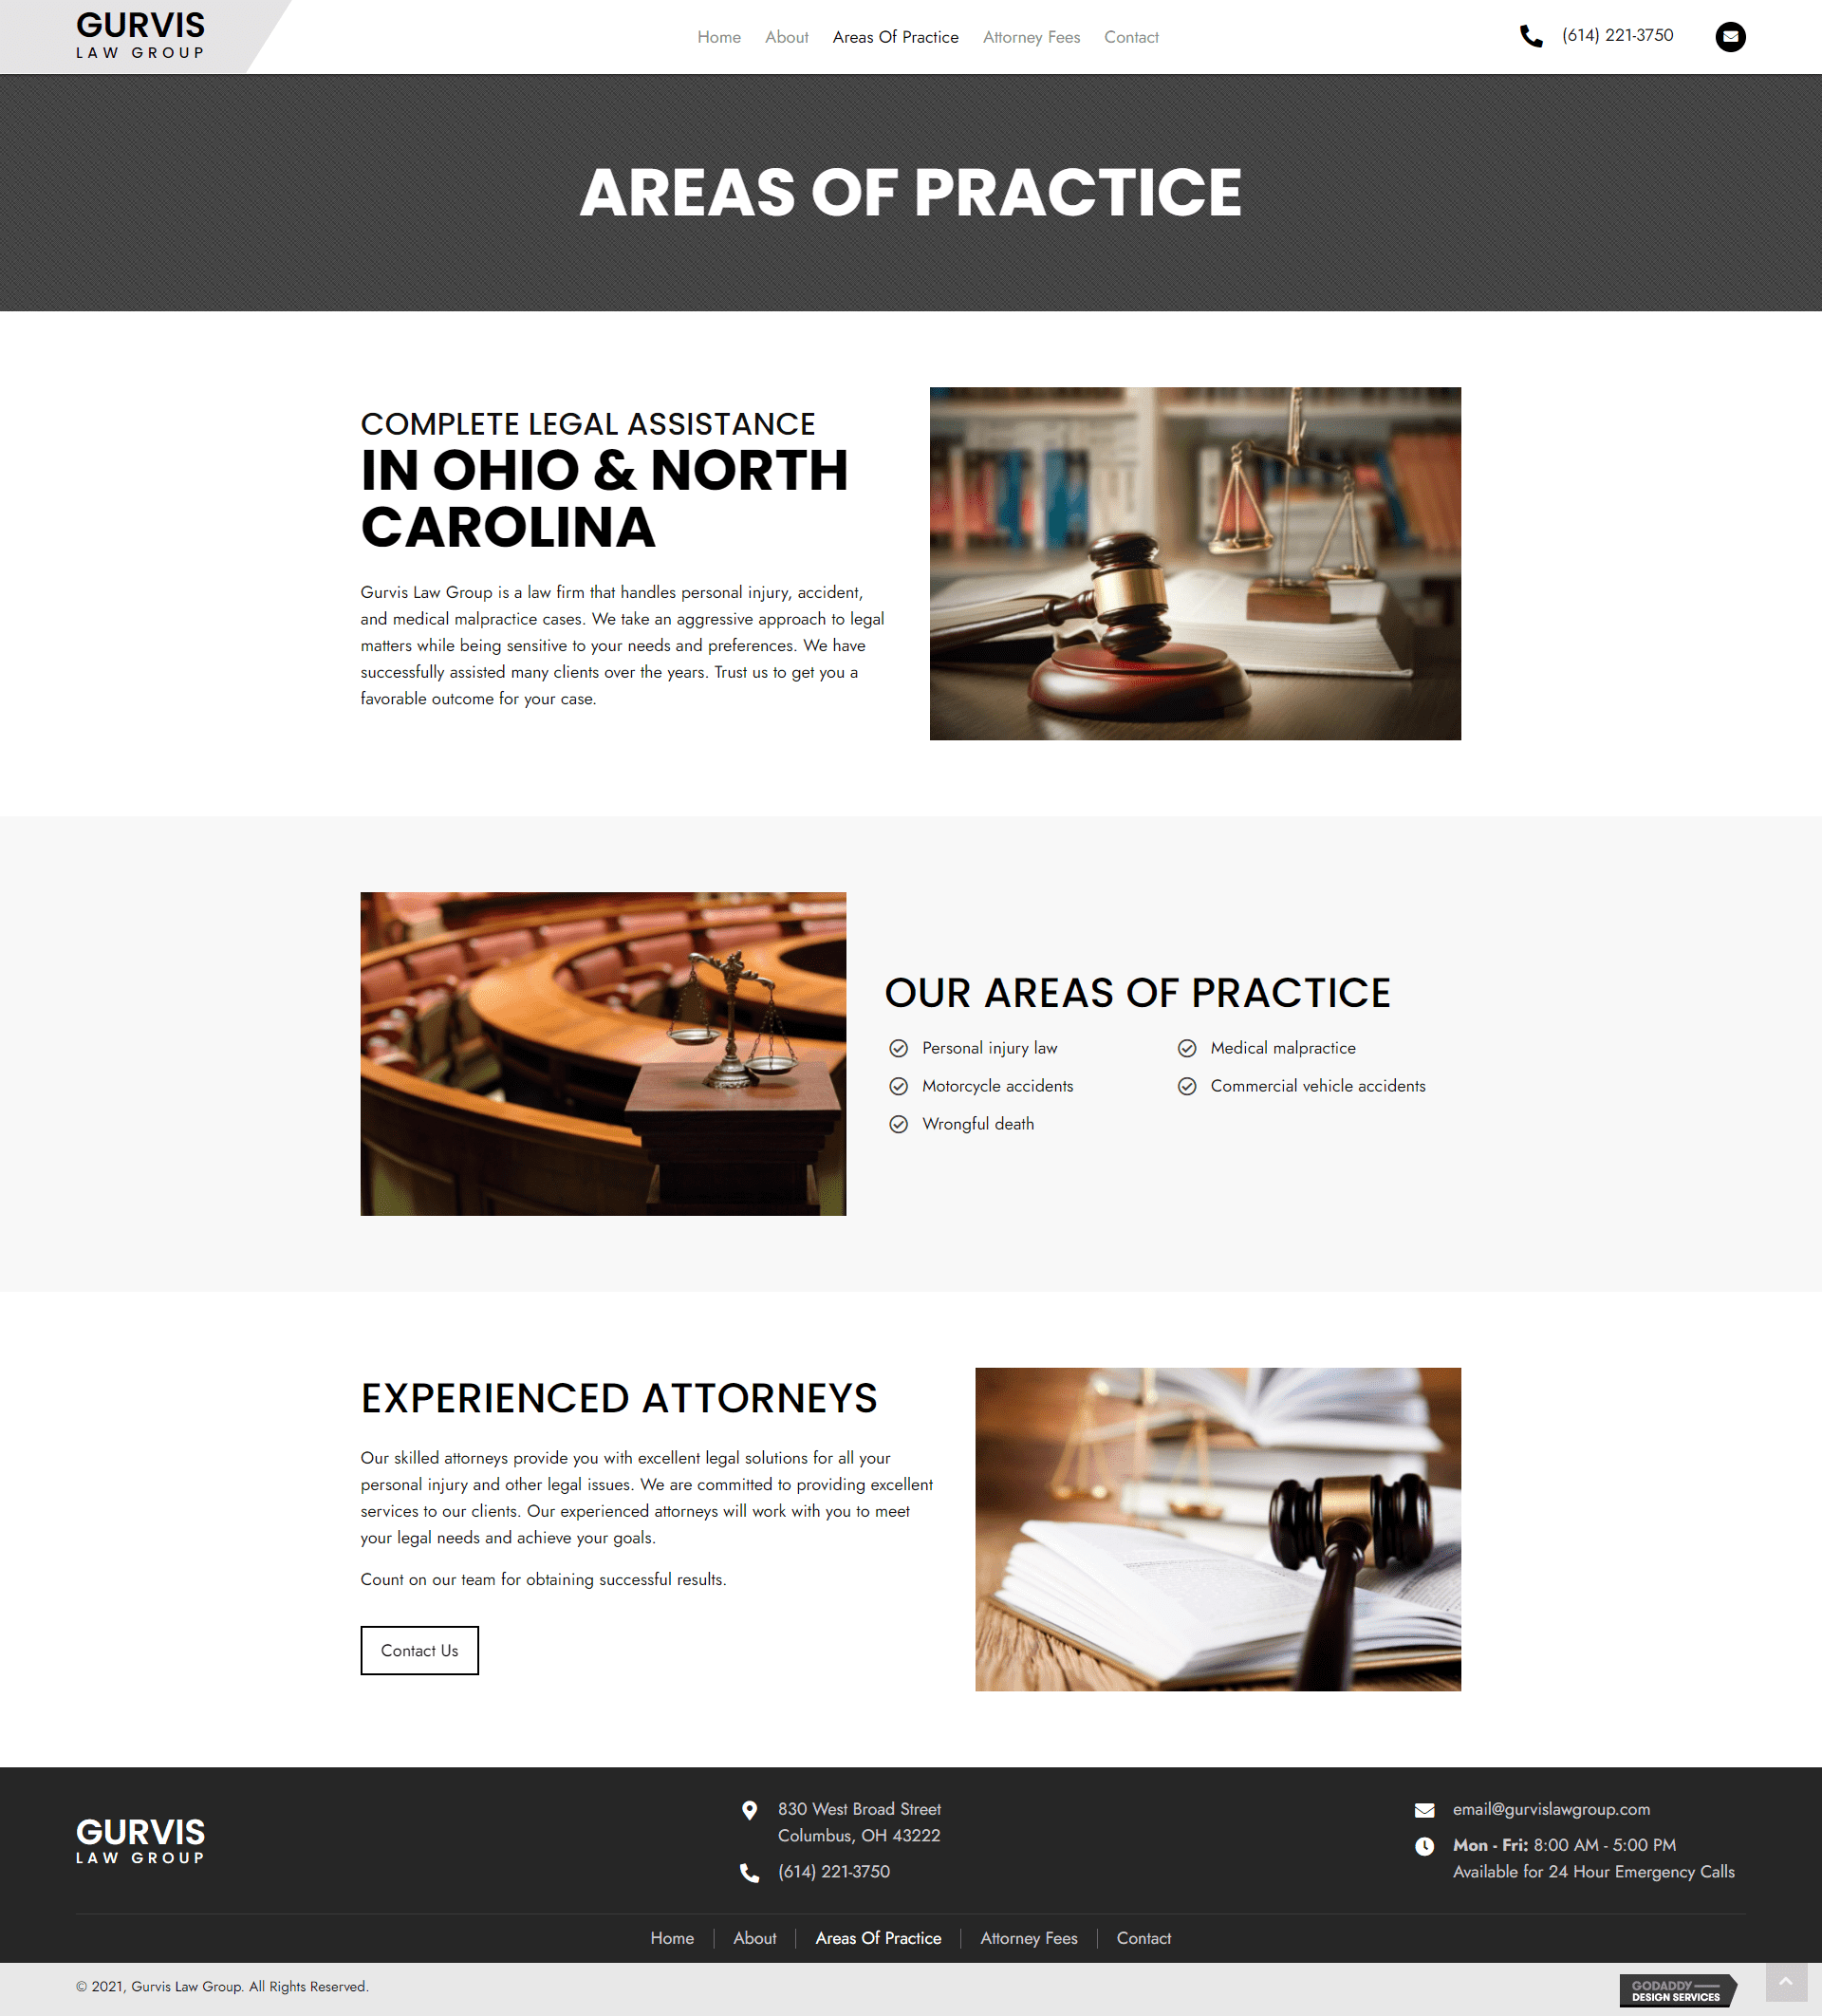 Gurvis Law Group Areas of practice page